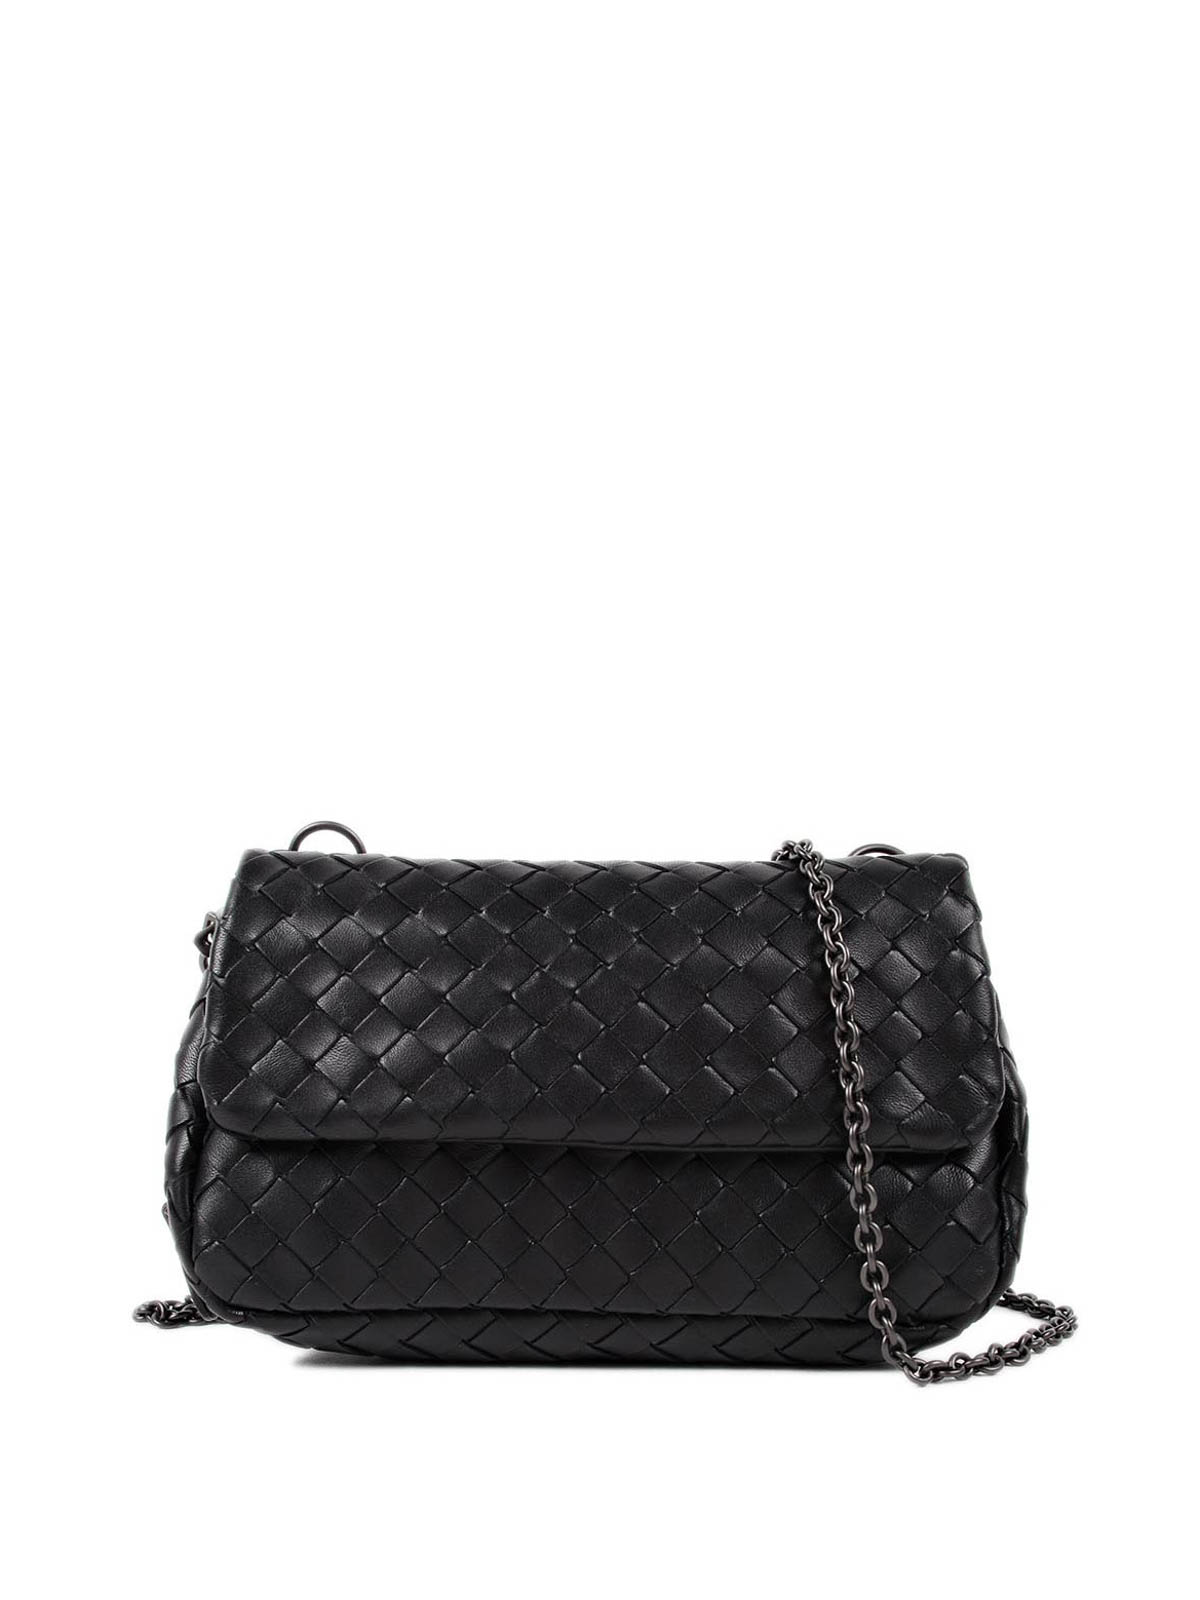 69f1762fa4e5a Bottega Veneta Nappa Crossbody Bag